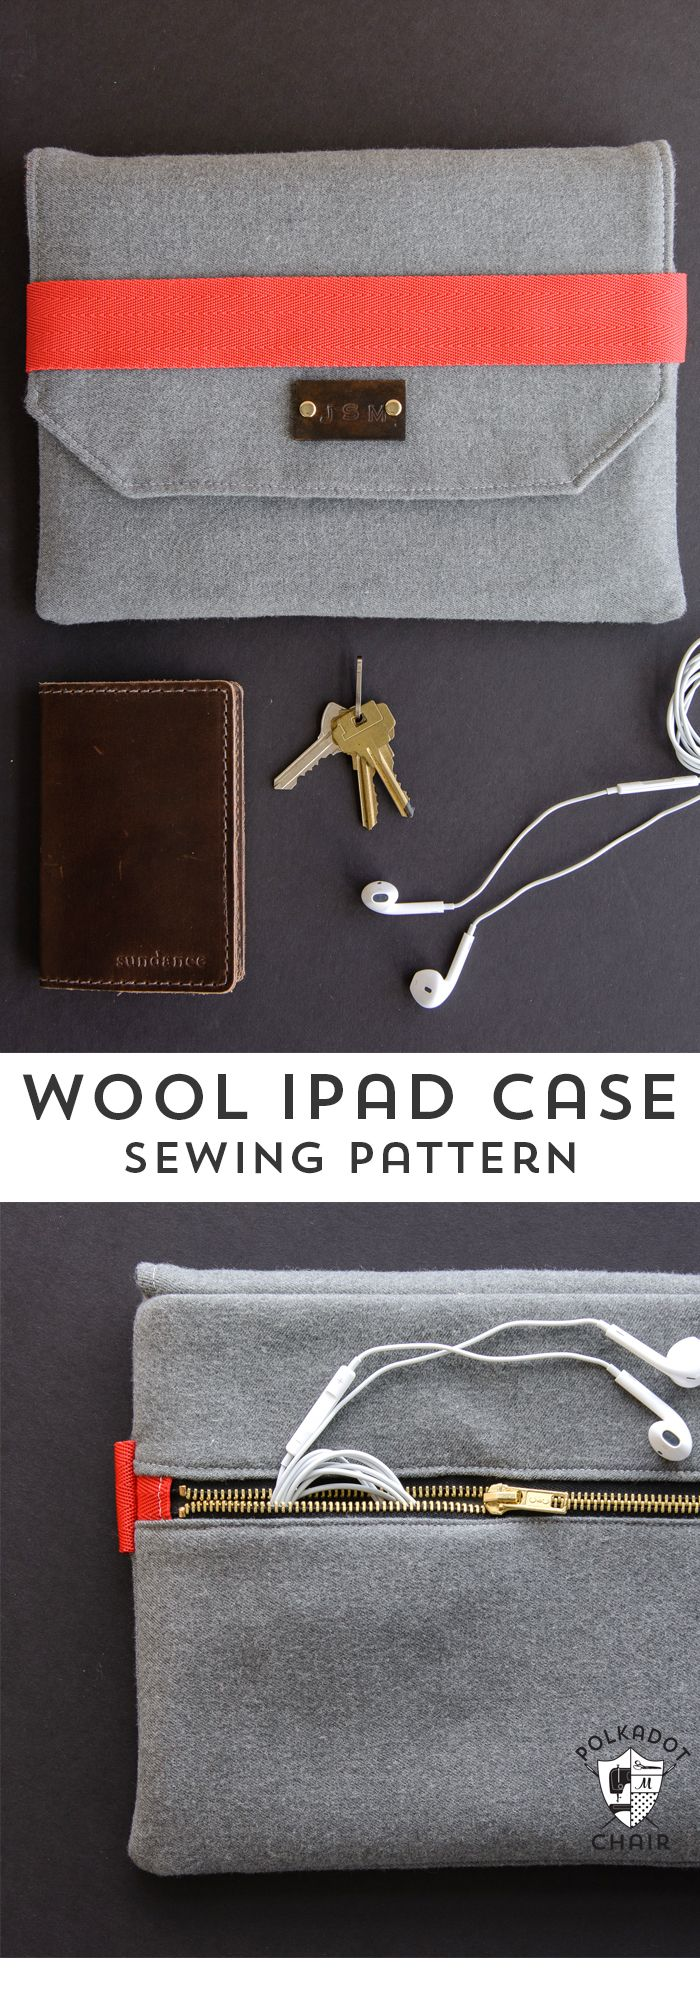 DIY Wool iPad Case Sewing pattern and tutorial, a great pattern for an iPad case for guys, would be a fun father's day gift.